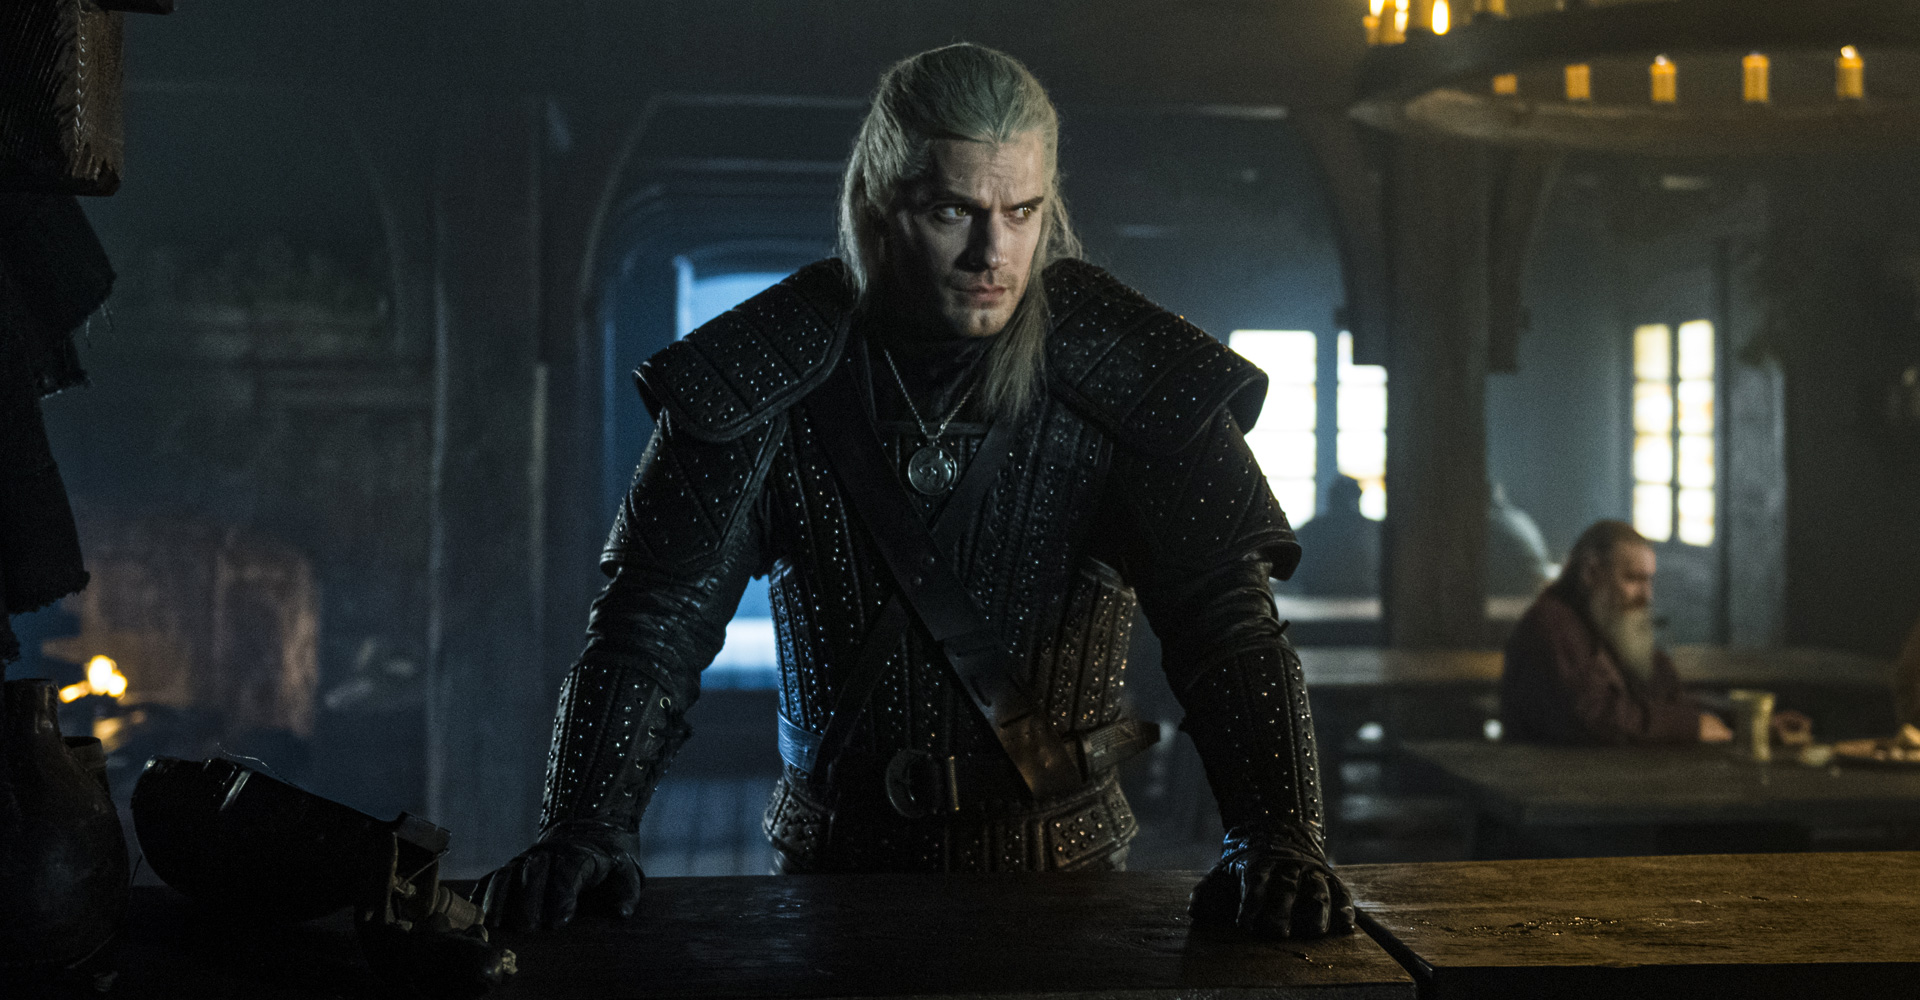 The Witcher kommt am 20. Dezember